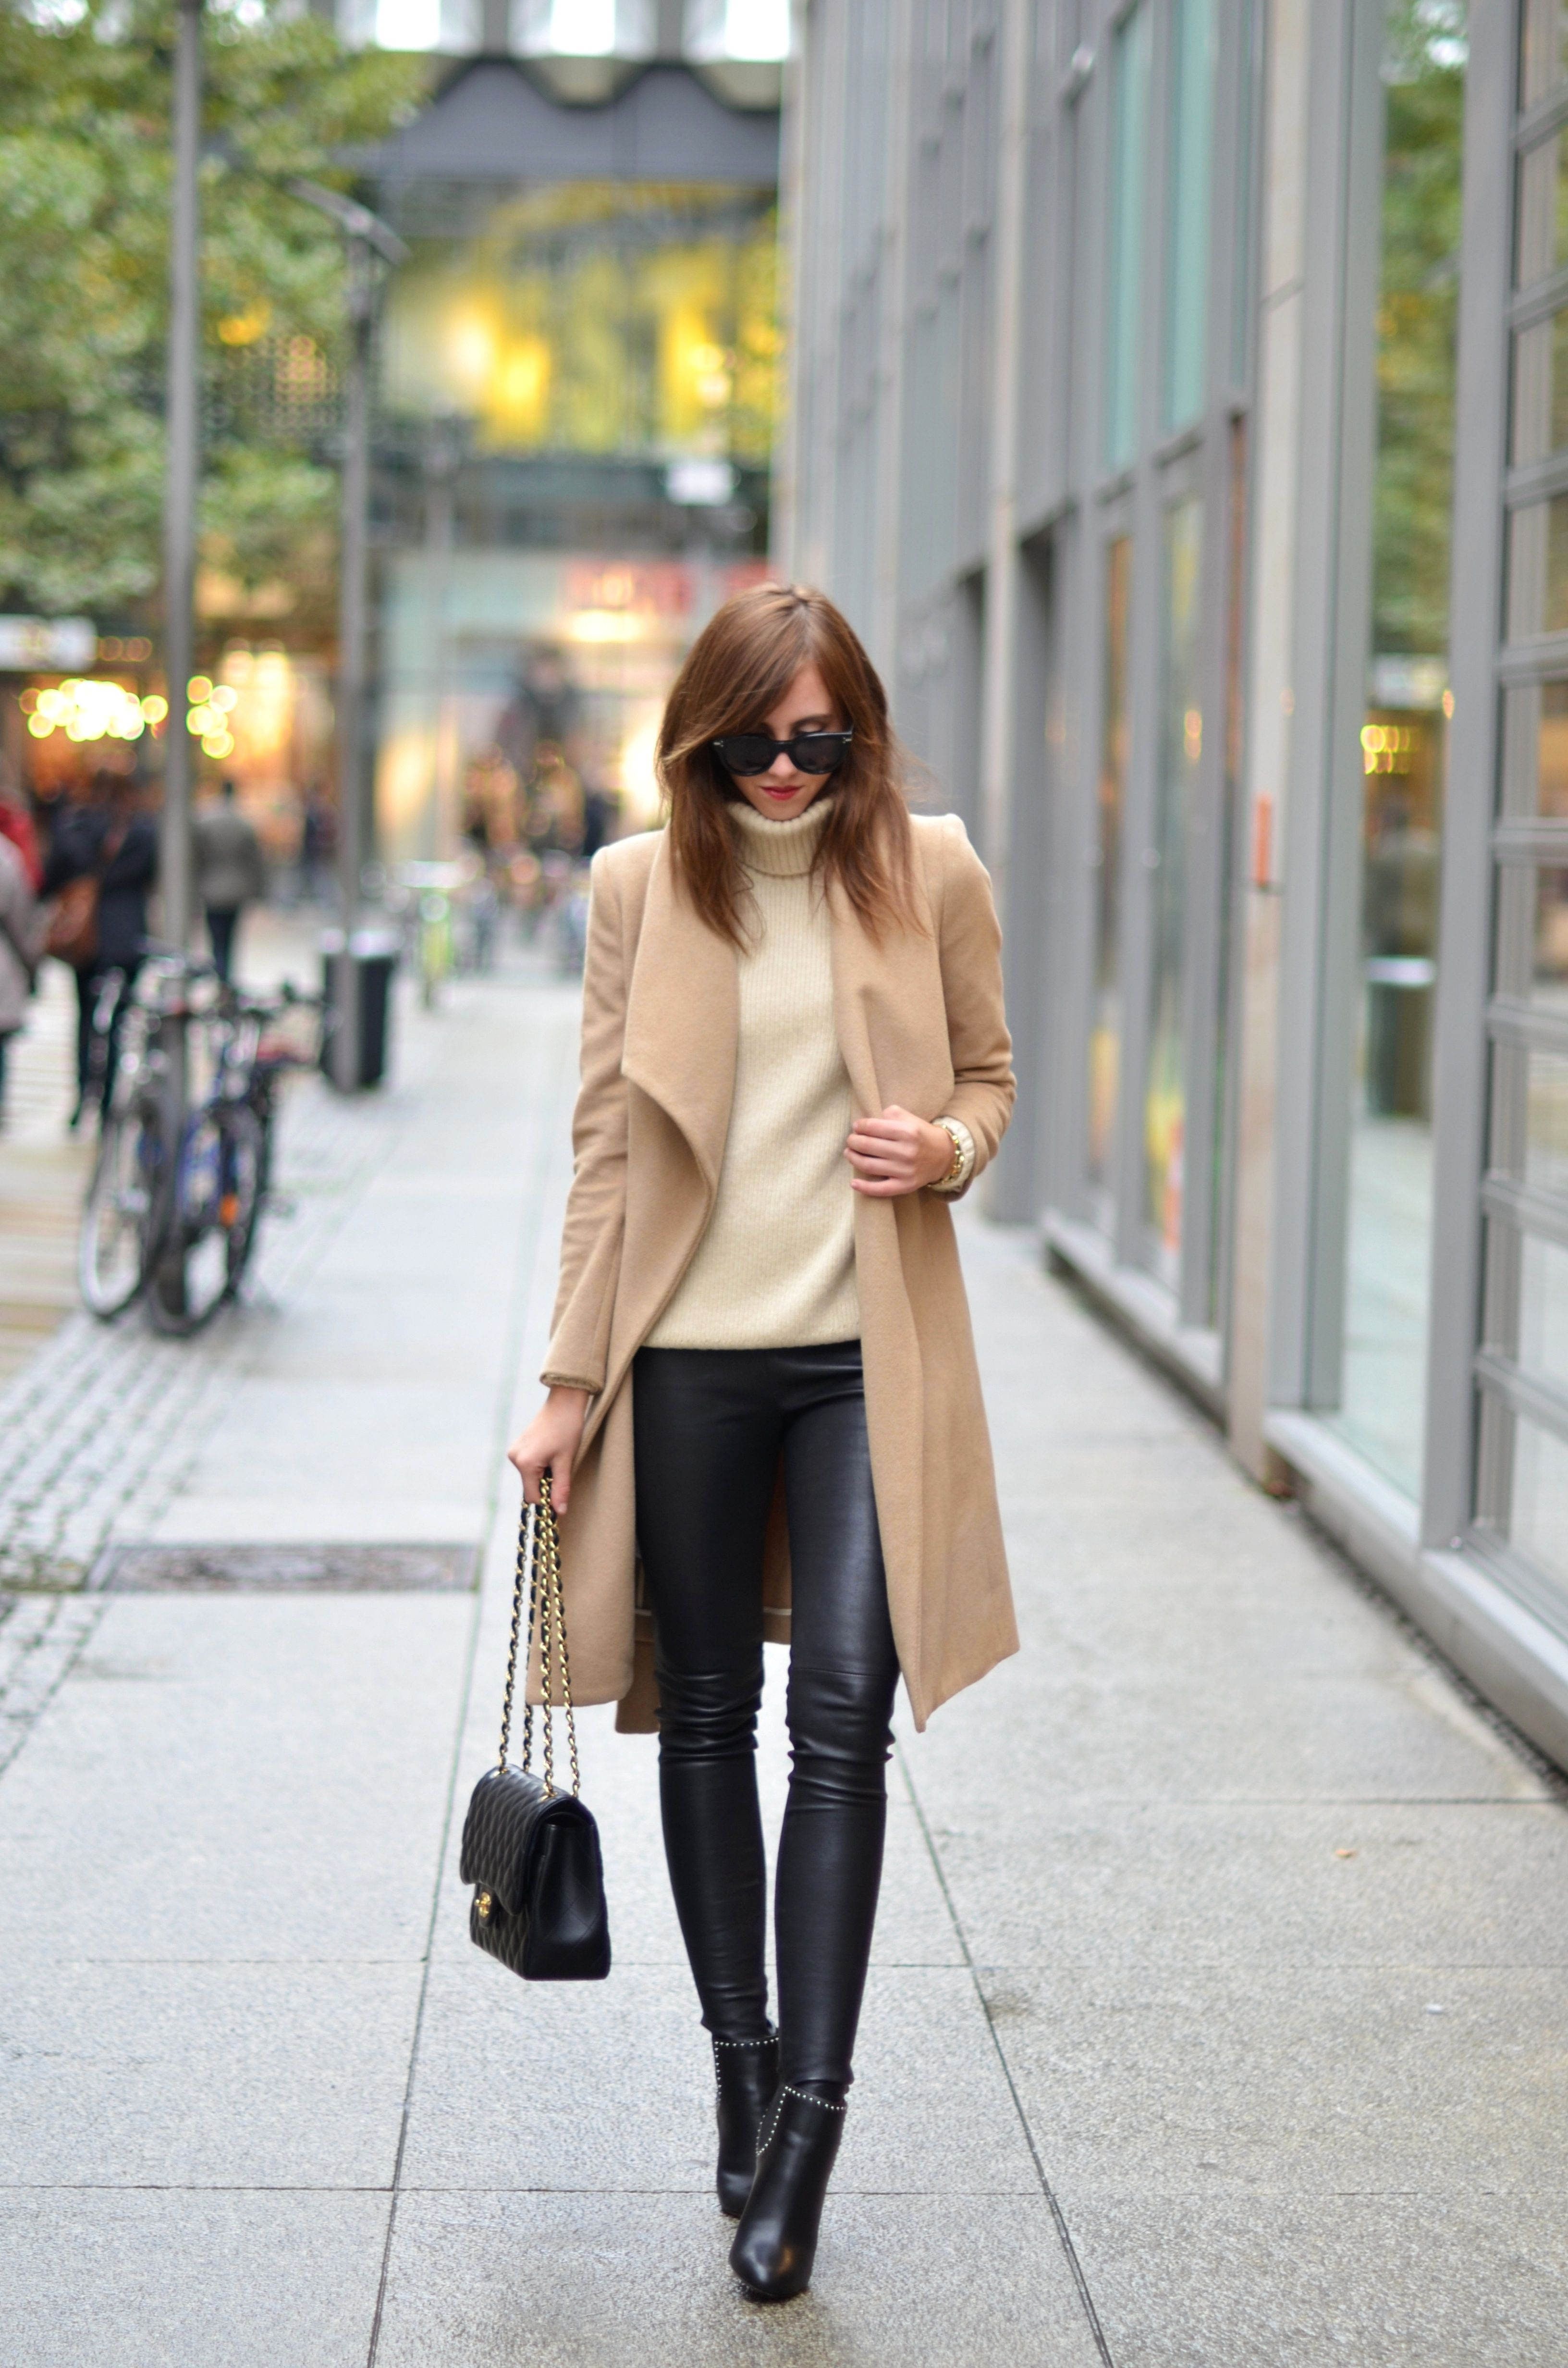 c26f01b17e0 Casual Outfits To Try For Fall When You Have Nothing to Wear Just The Design